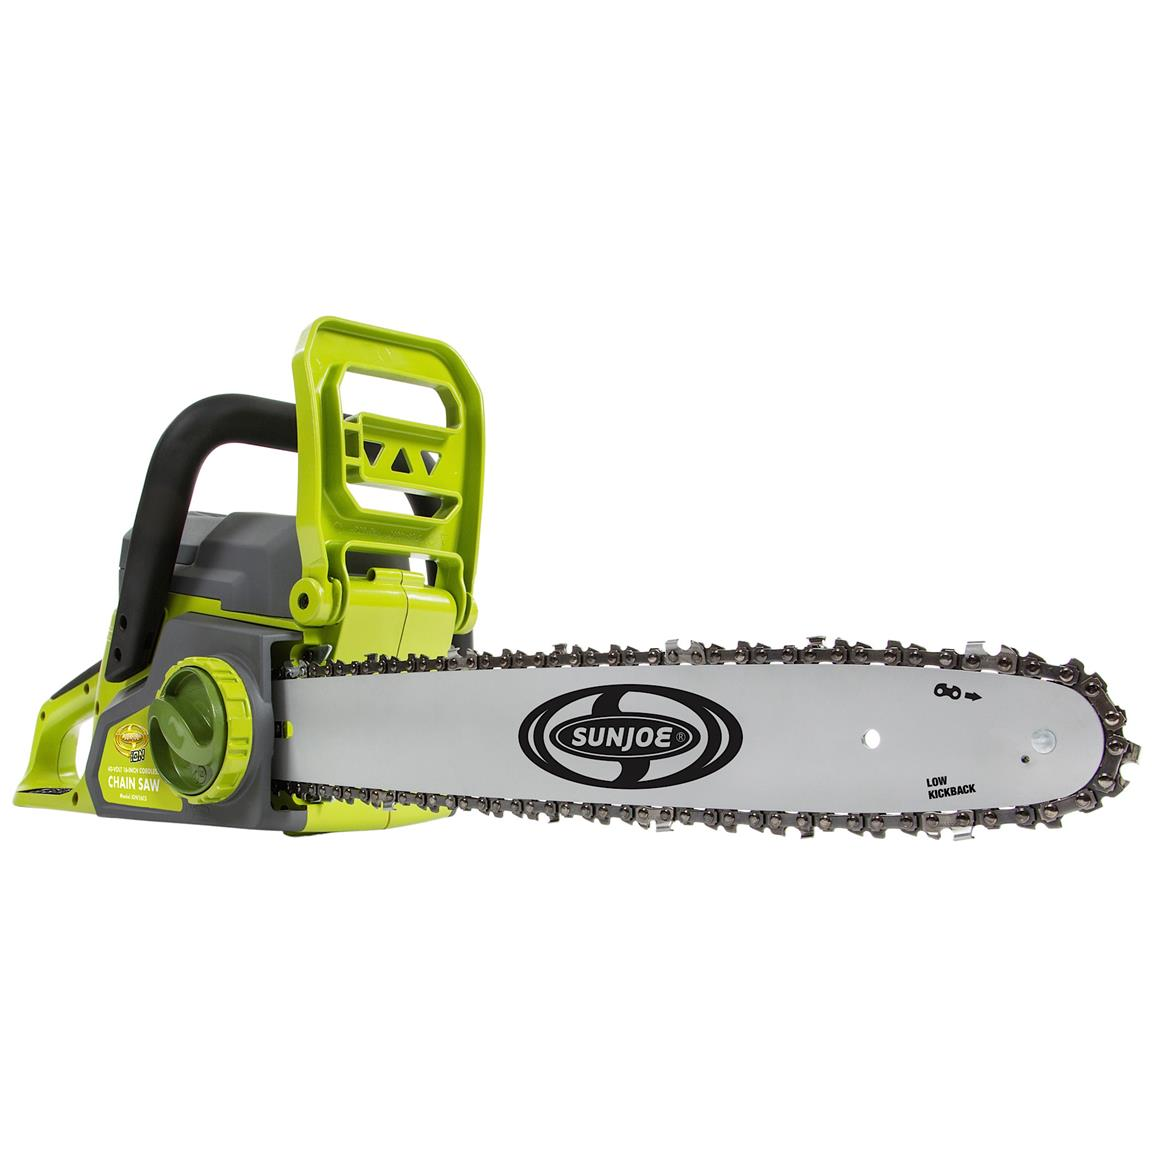 Sun Joe iON 16 inch 40V Rechargeable Cordless Chainsaw